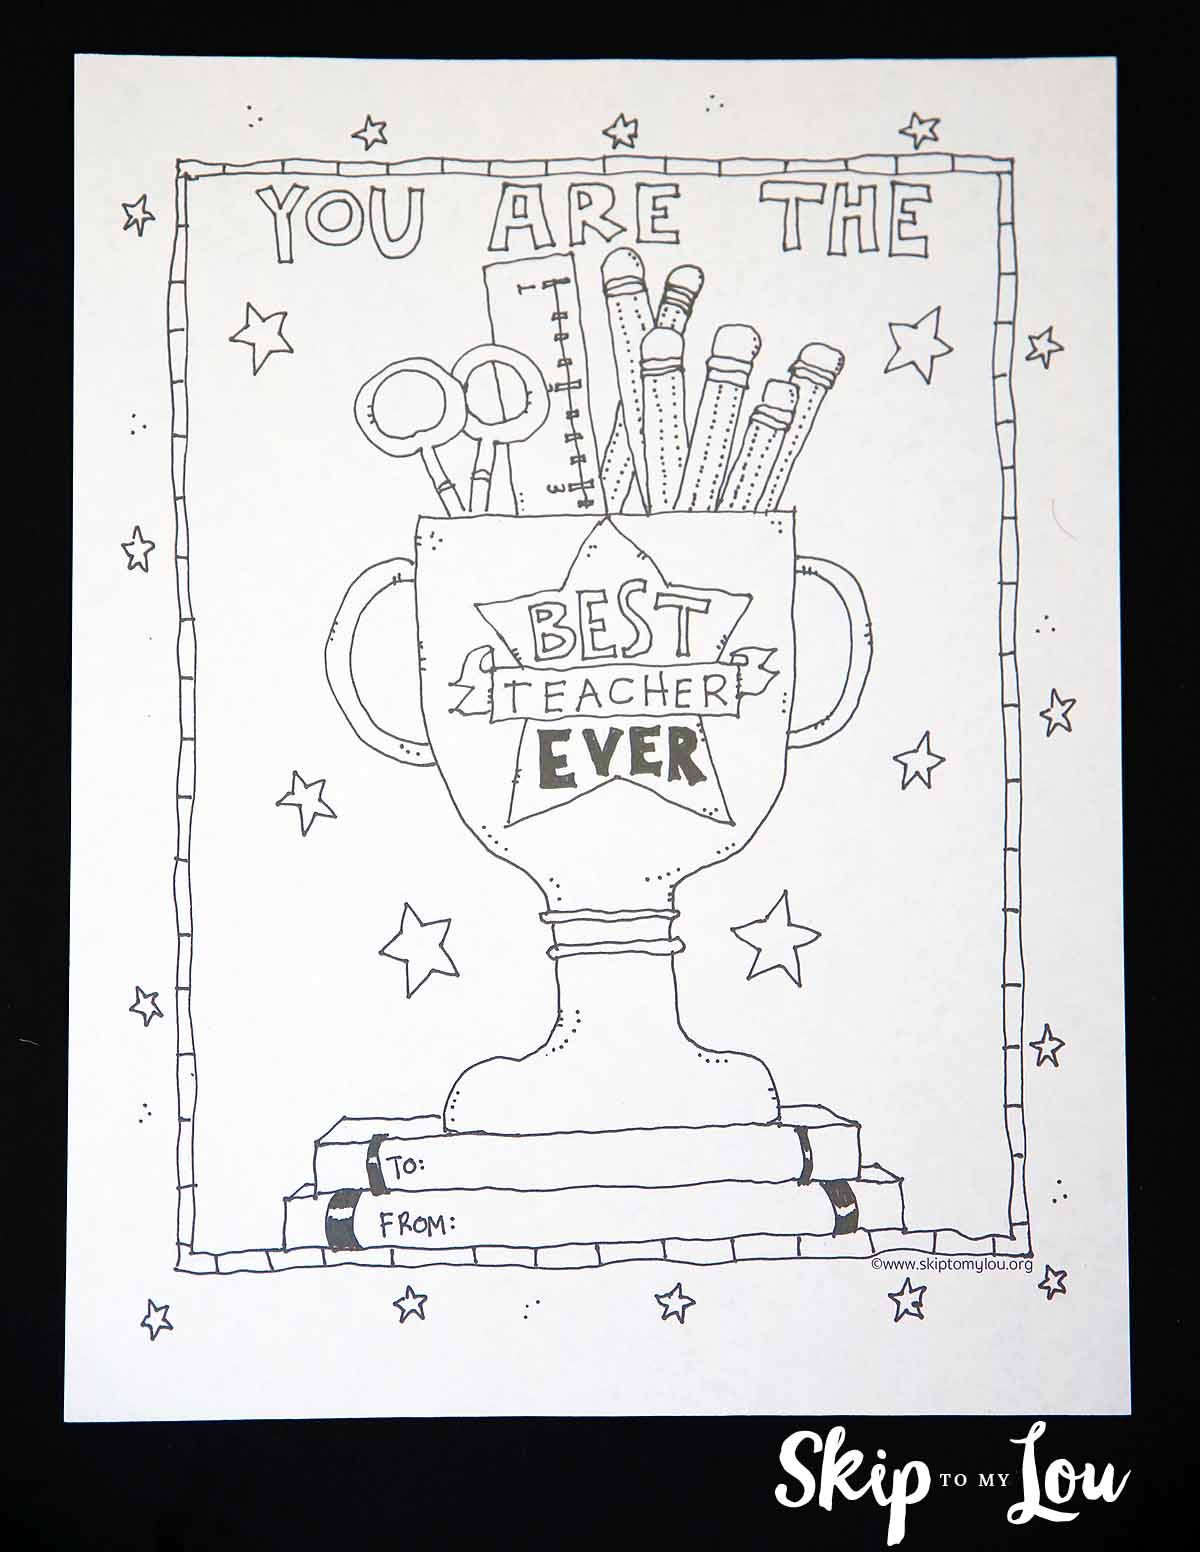 Best Teacher Coloring Page For The Best Teacher Ever Teacher Appreciation Printables Free Teacher Appreciation Printables Teacher Appreciation Cards